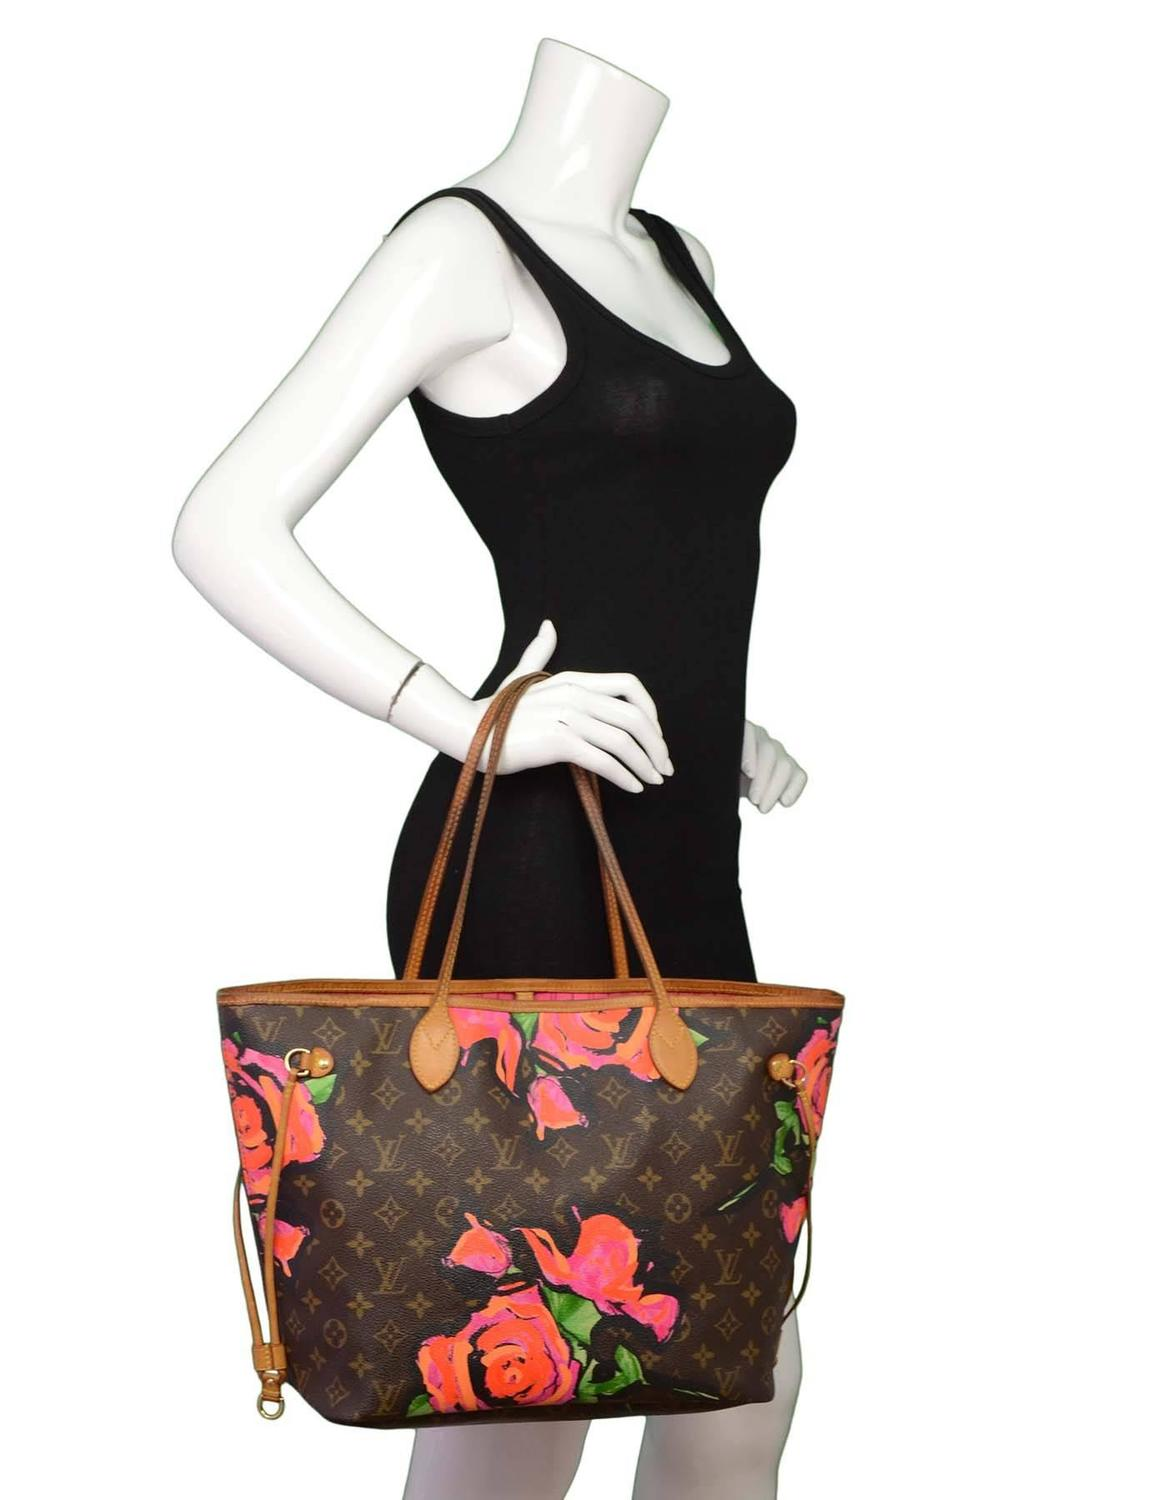 louis vuitton ltd edt monogram stephen sprouse roses neverfull mm tote bag for sale at 1stdibs